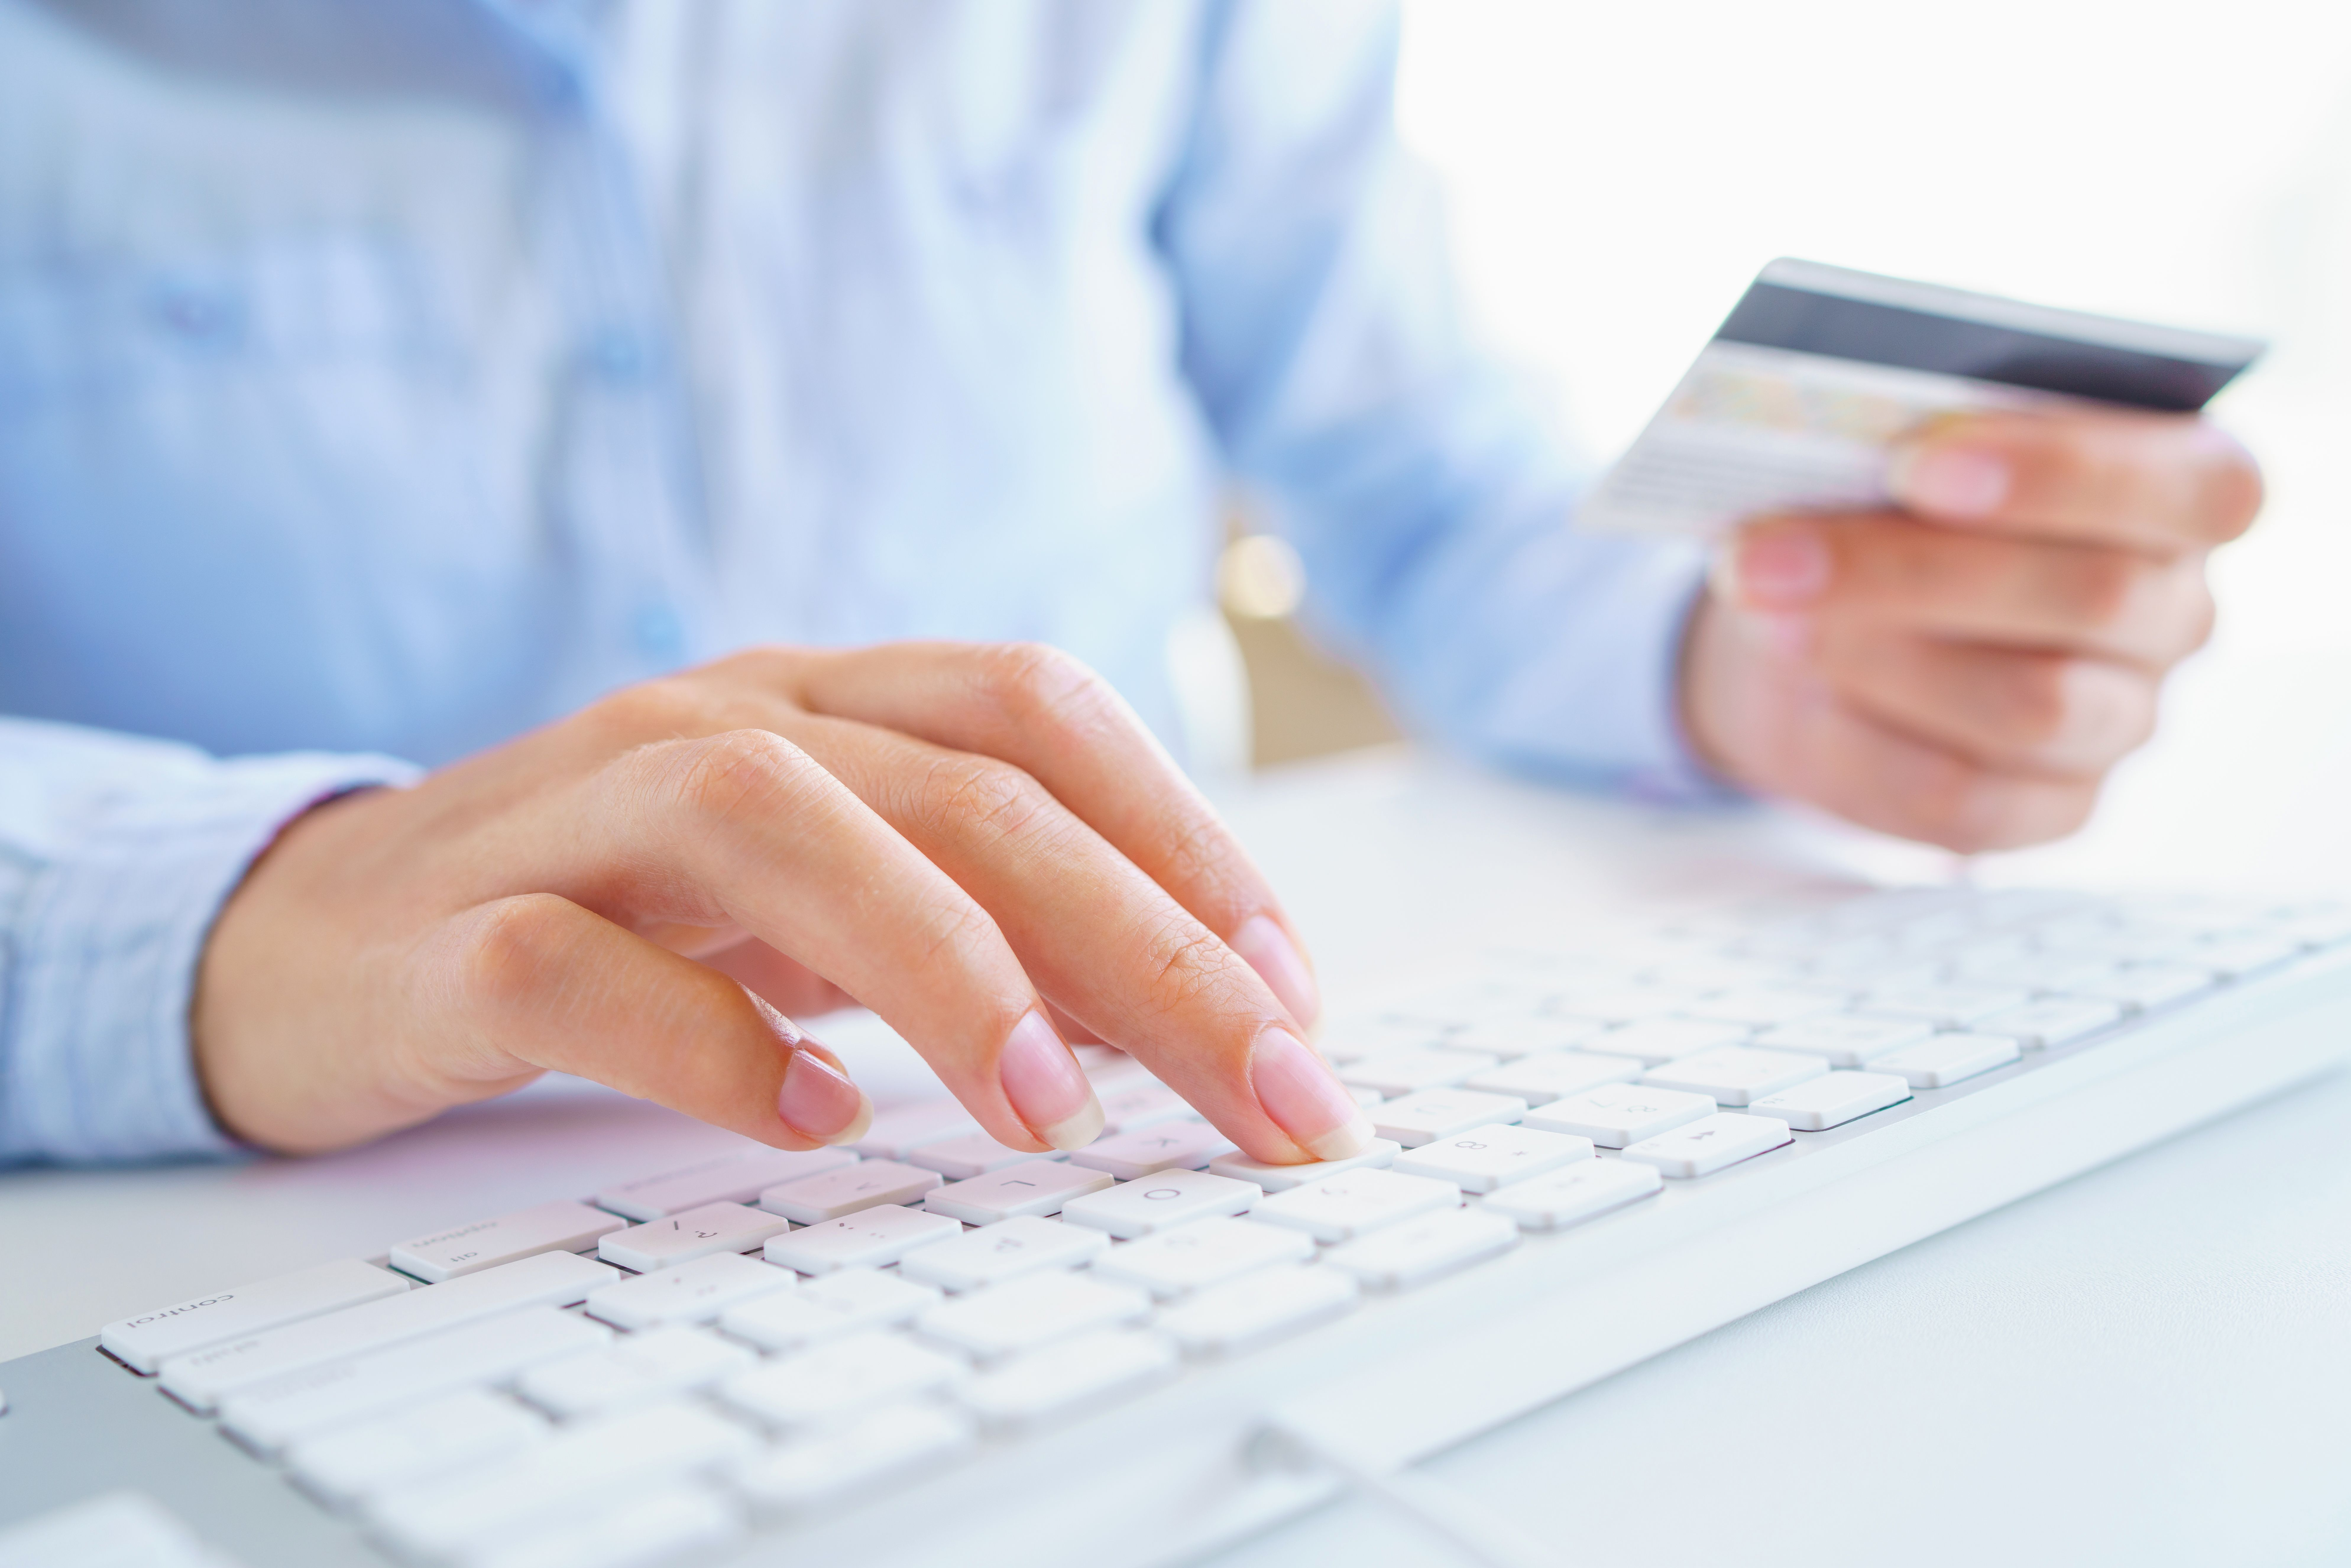 A woman using a credit card for online payments